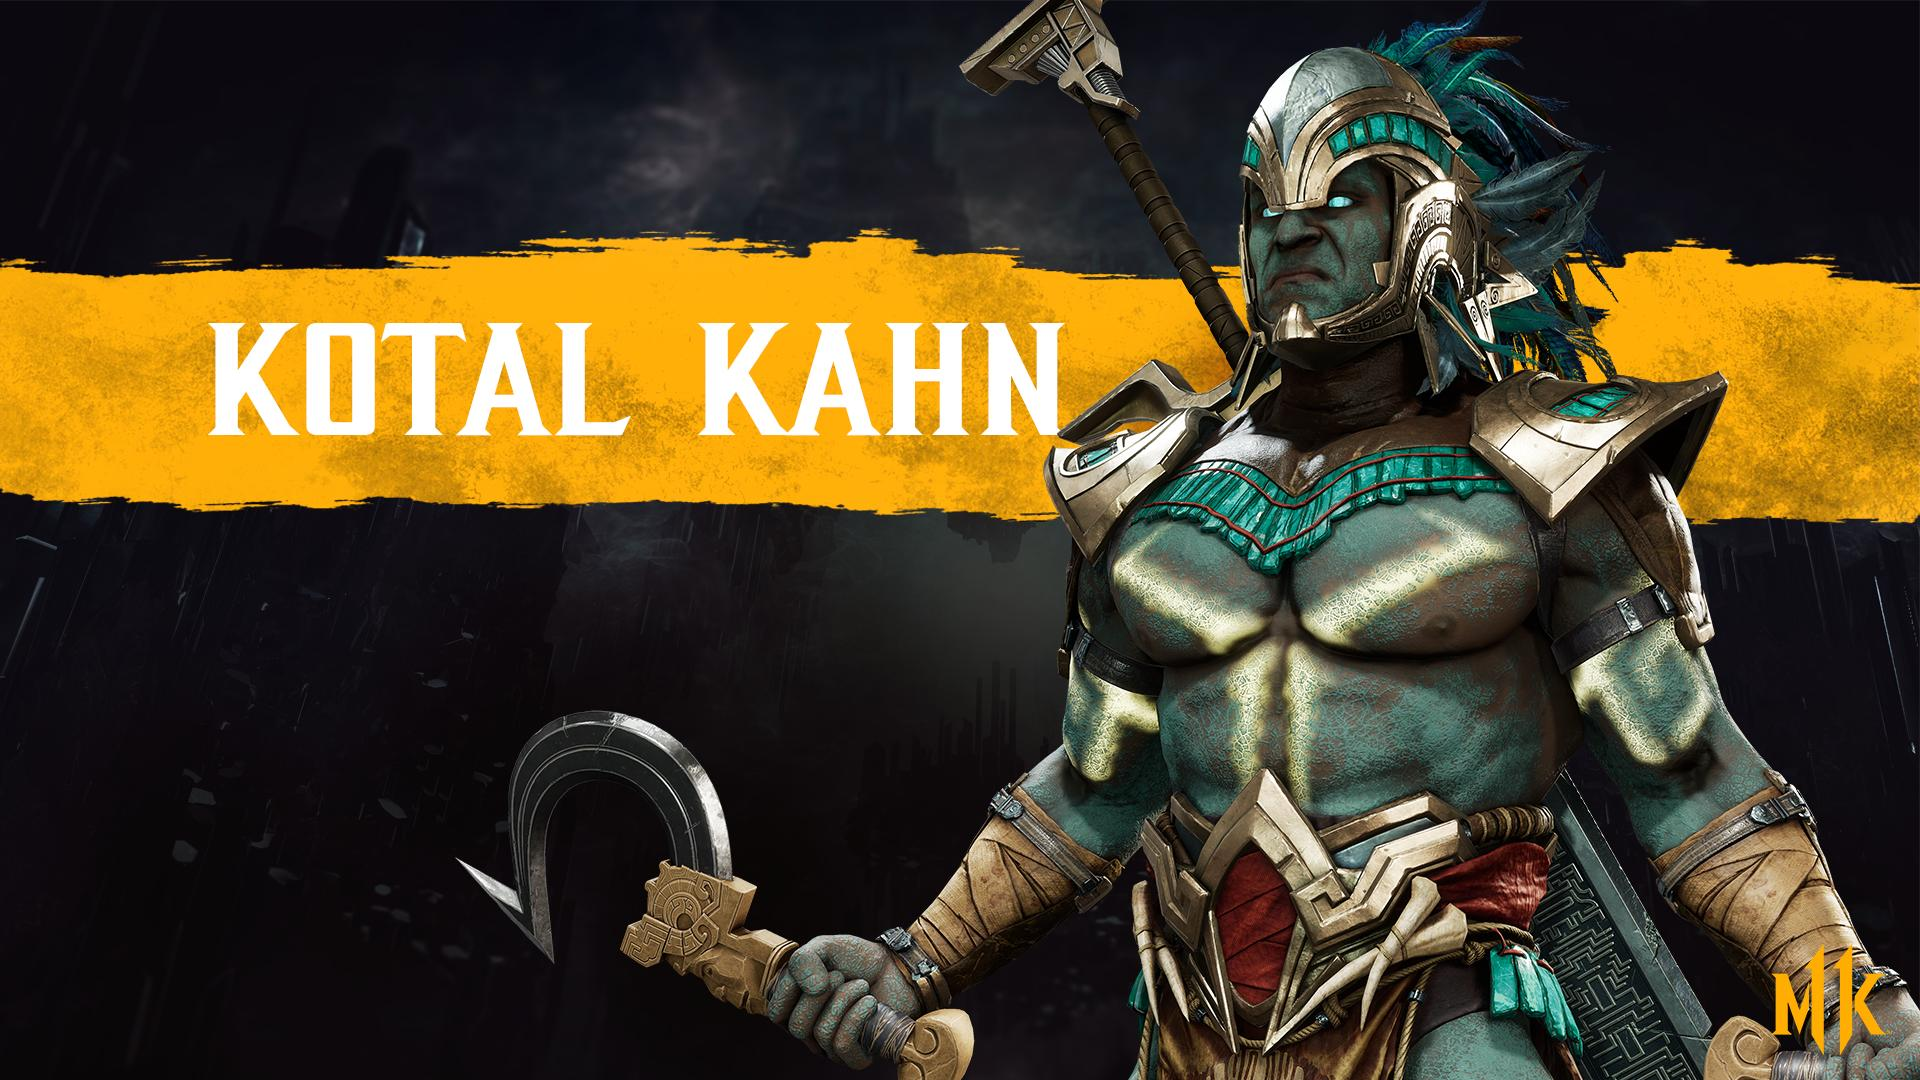 Mortal Kombat 11 background - Kotal Kahn